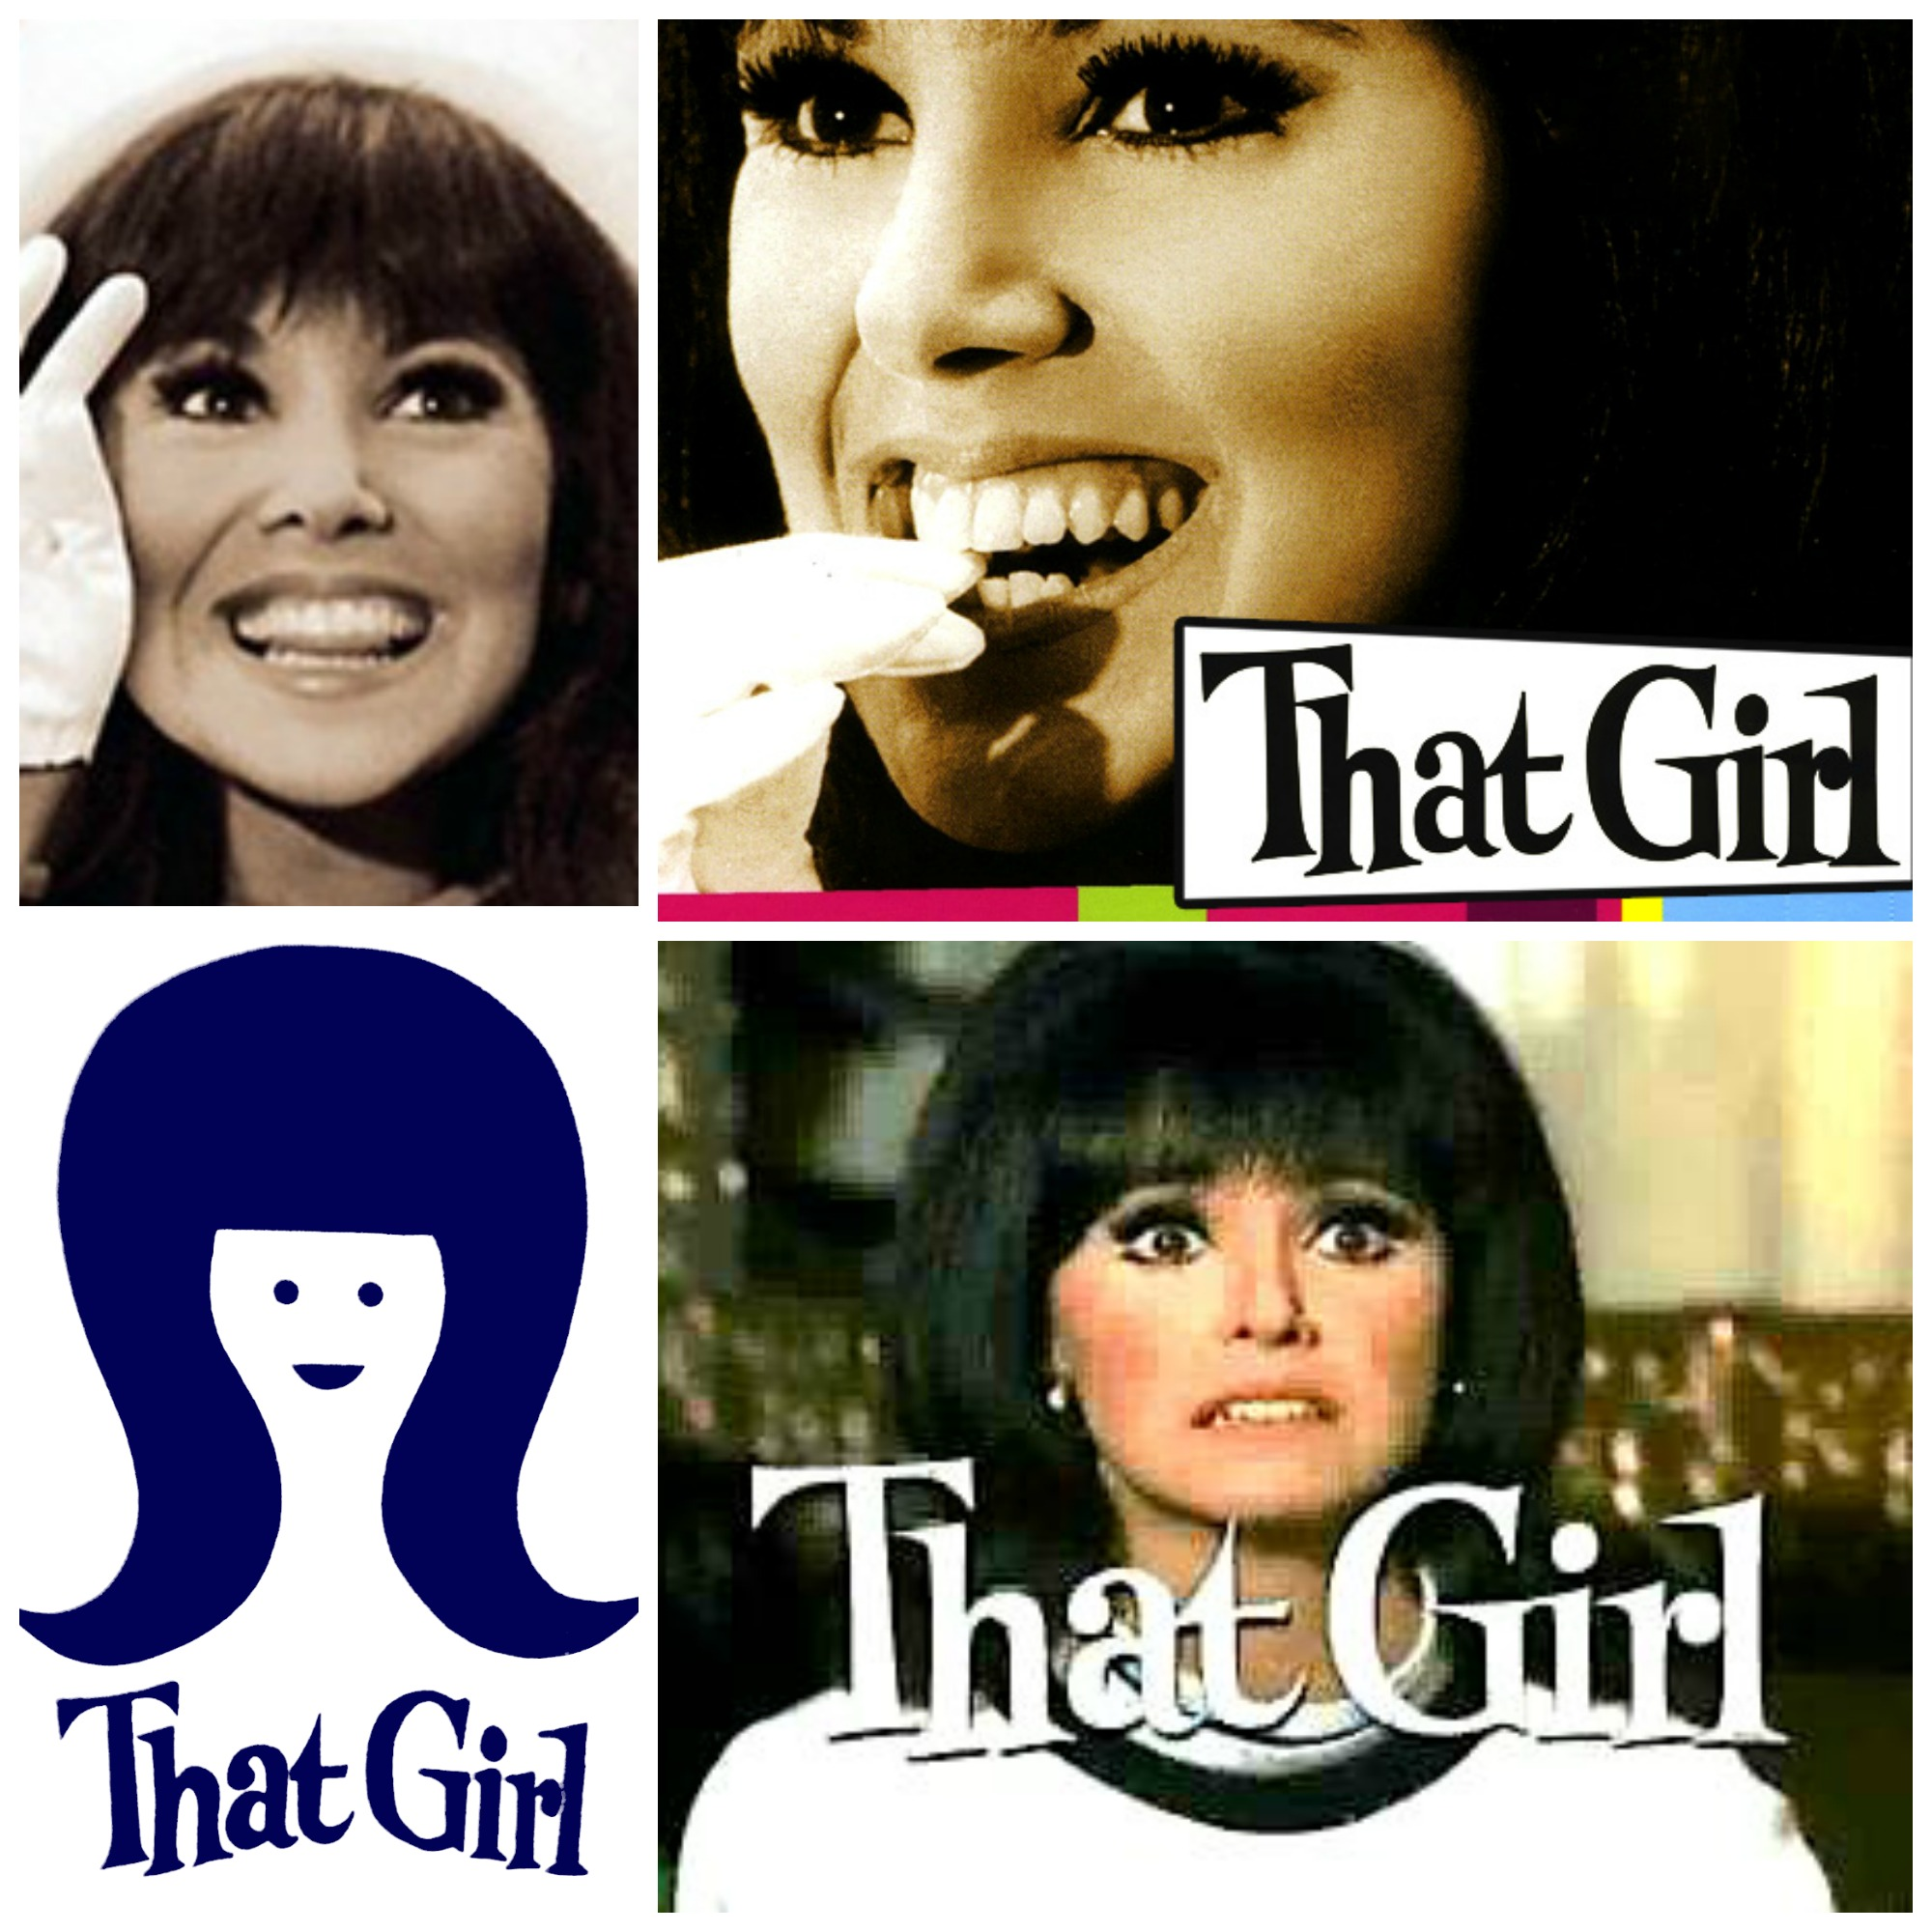 That Girl collage